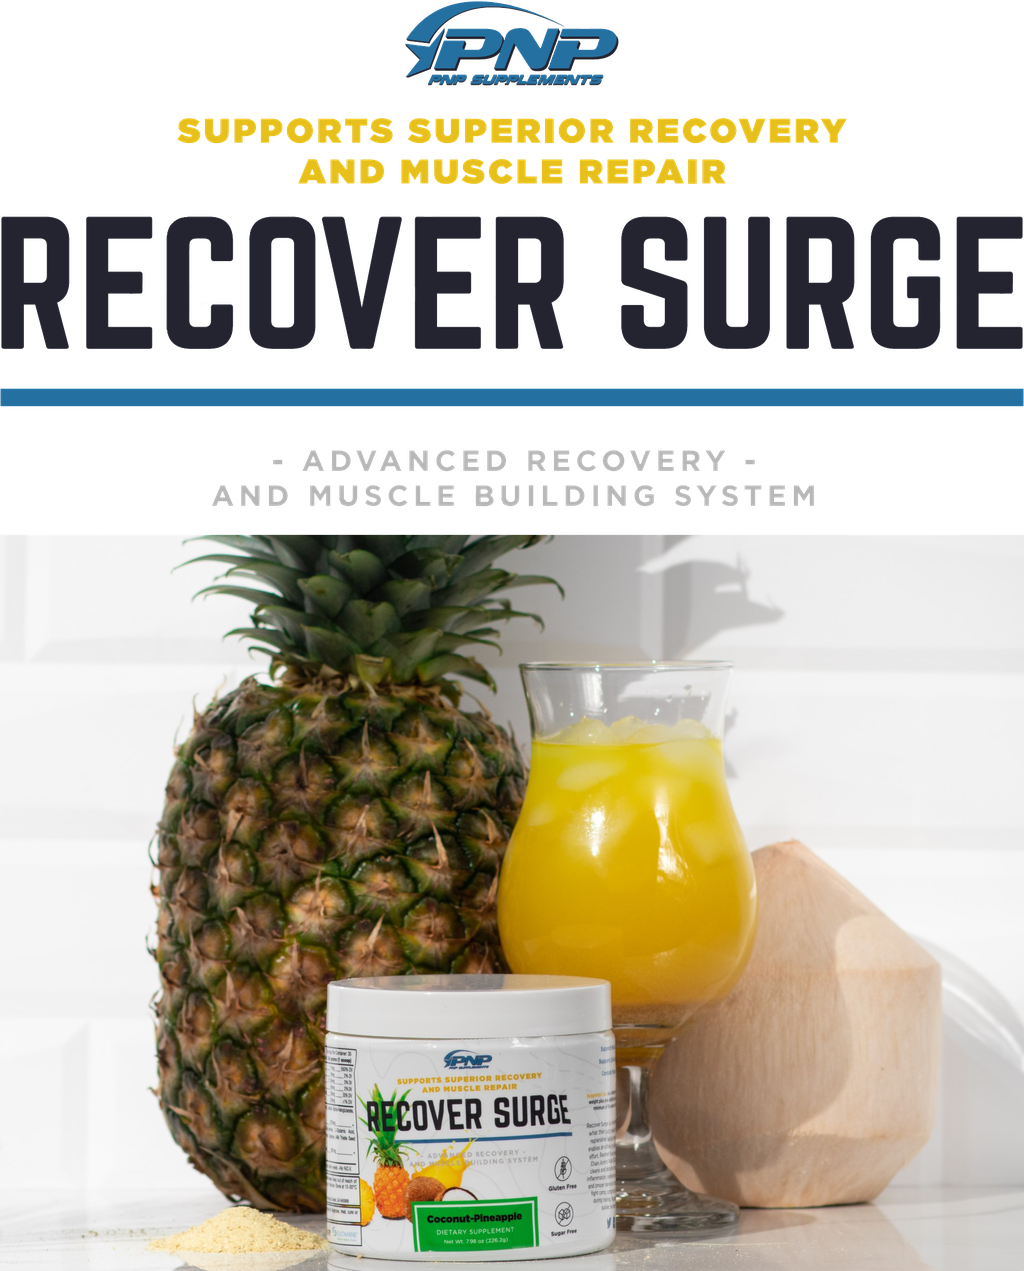 Best Recovery Supplement Recover Surge by PNP Supplements